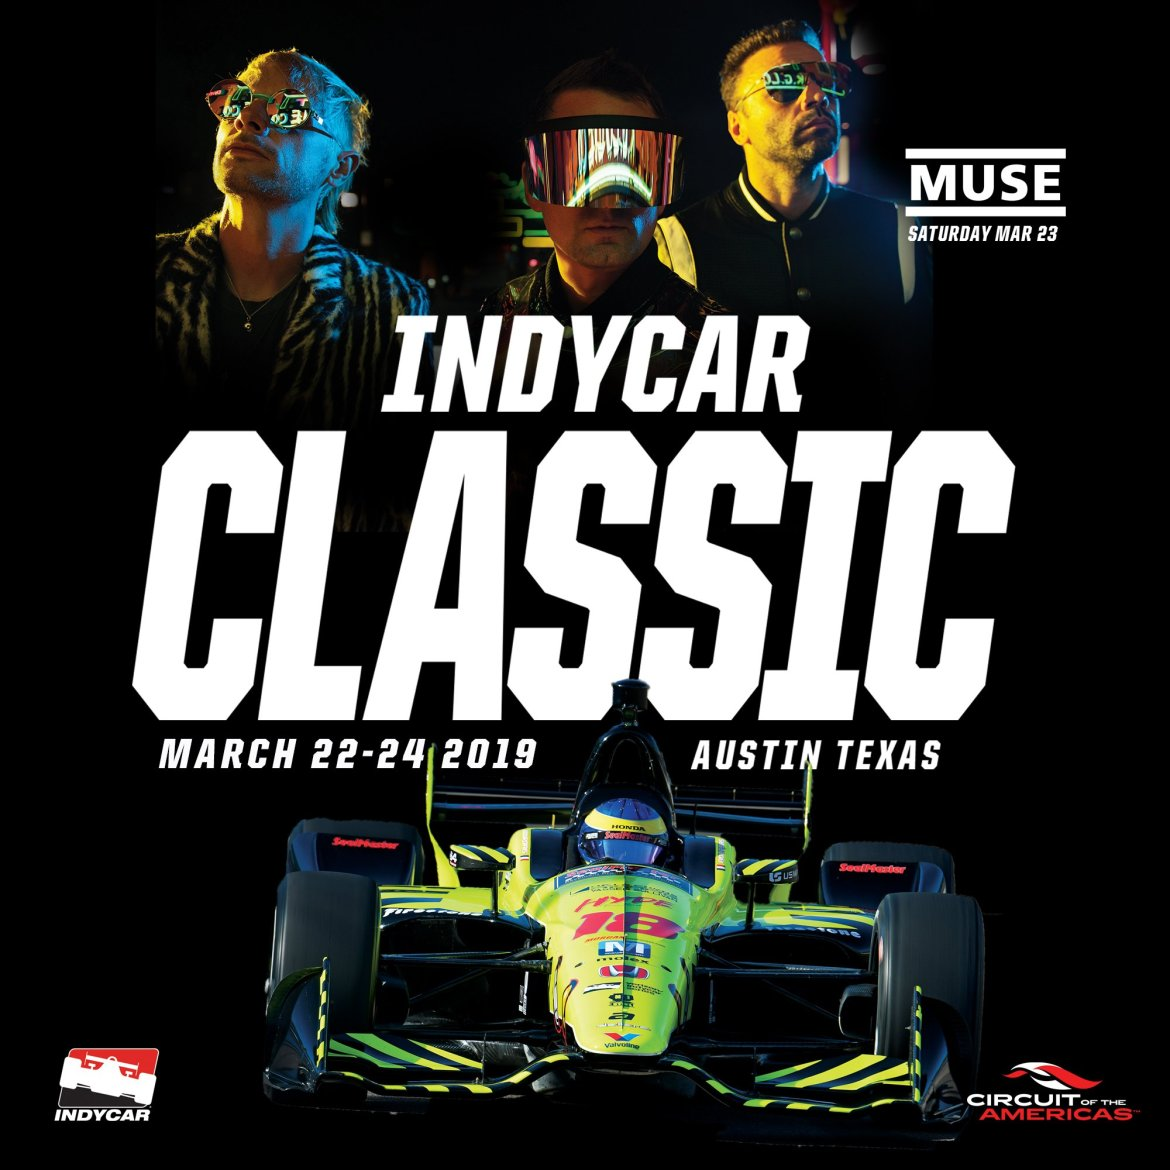 Muse to perform concert during COTA's inaugural IndyCar weekend